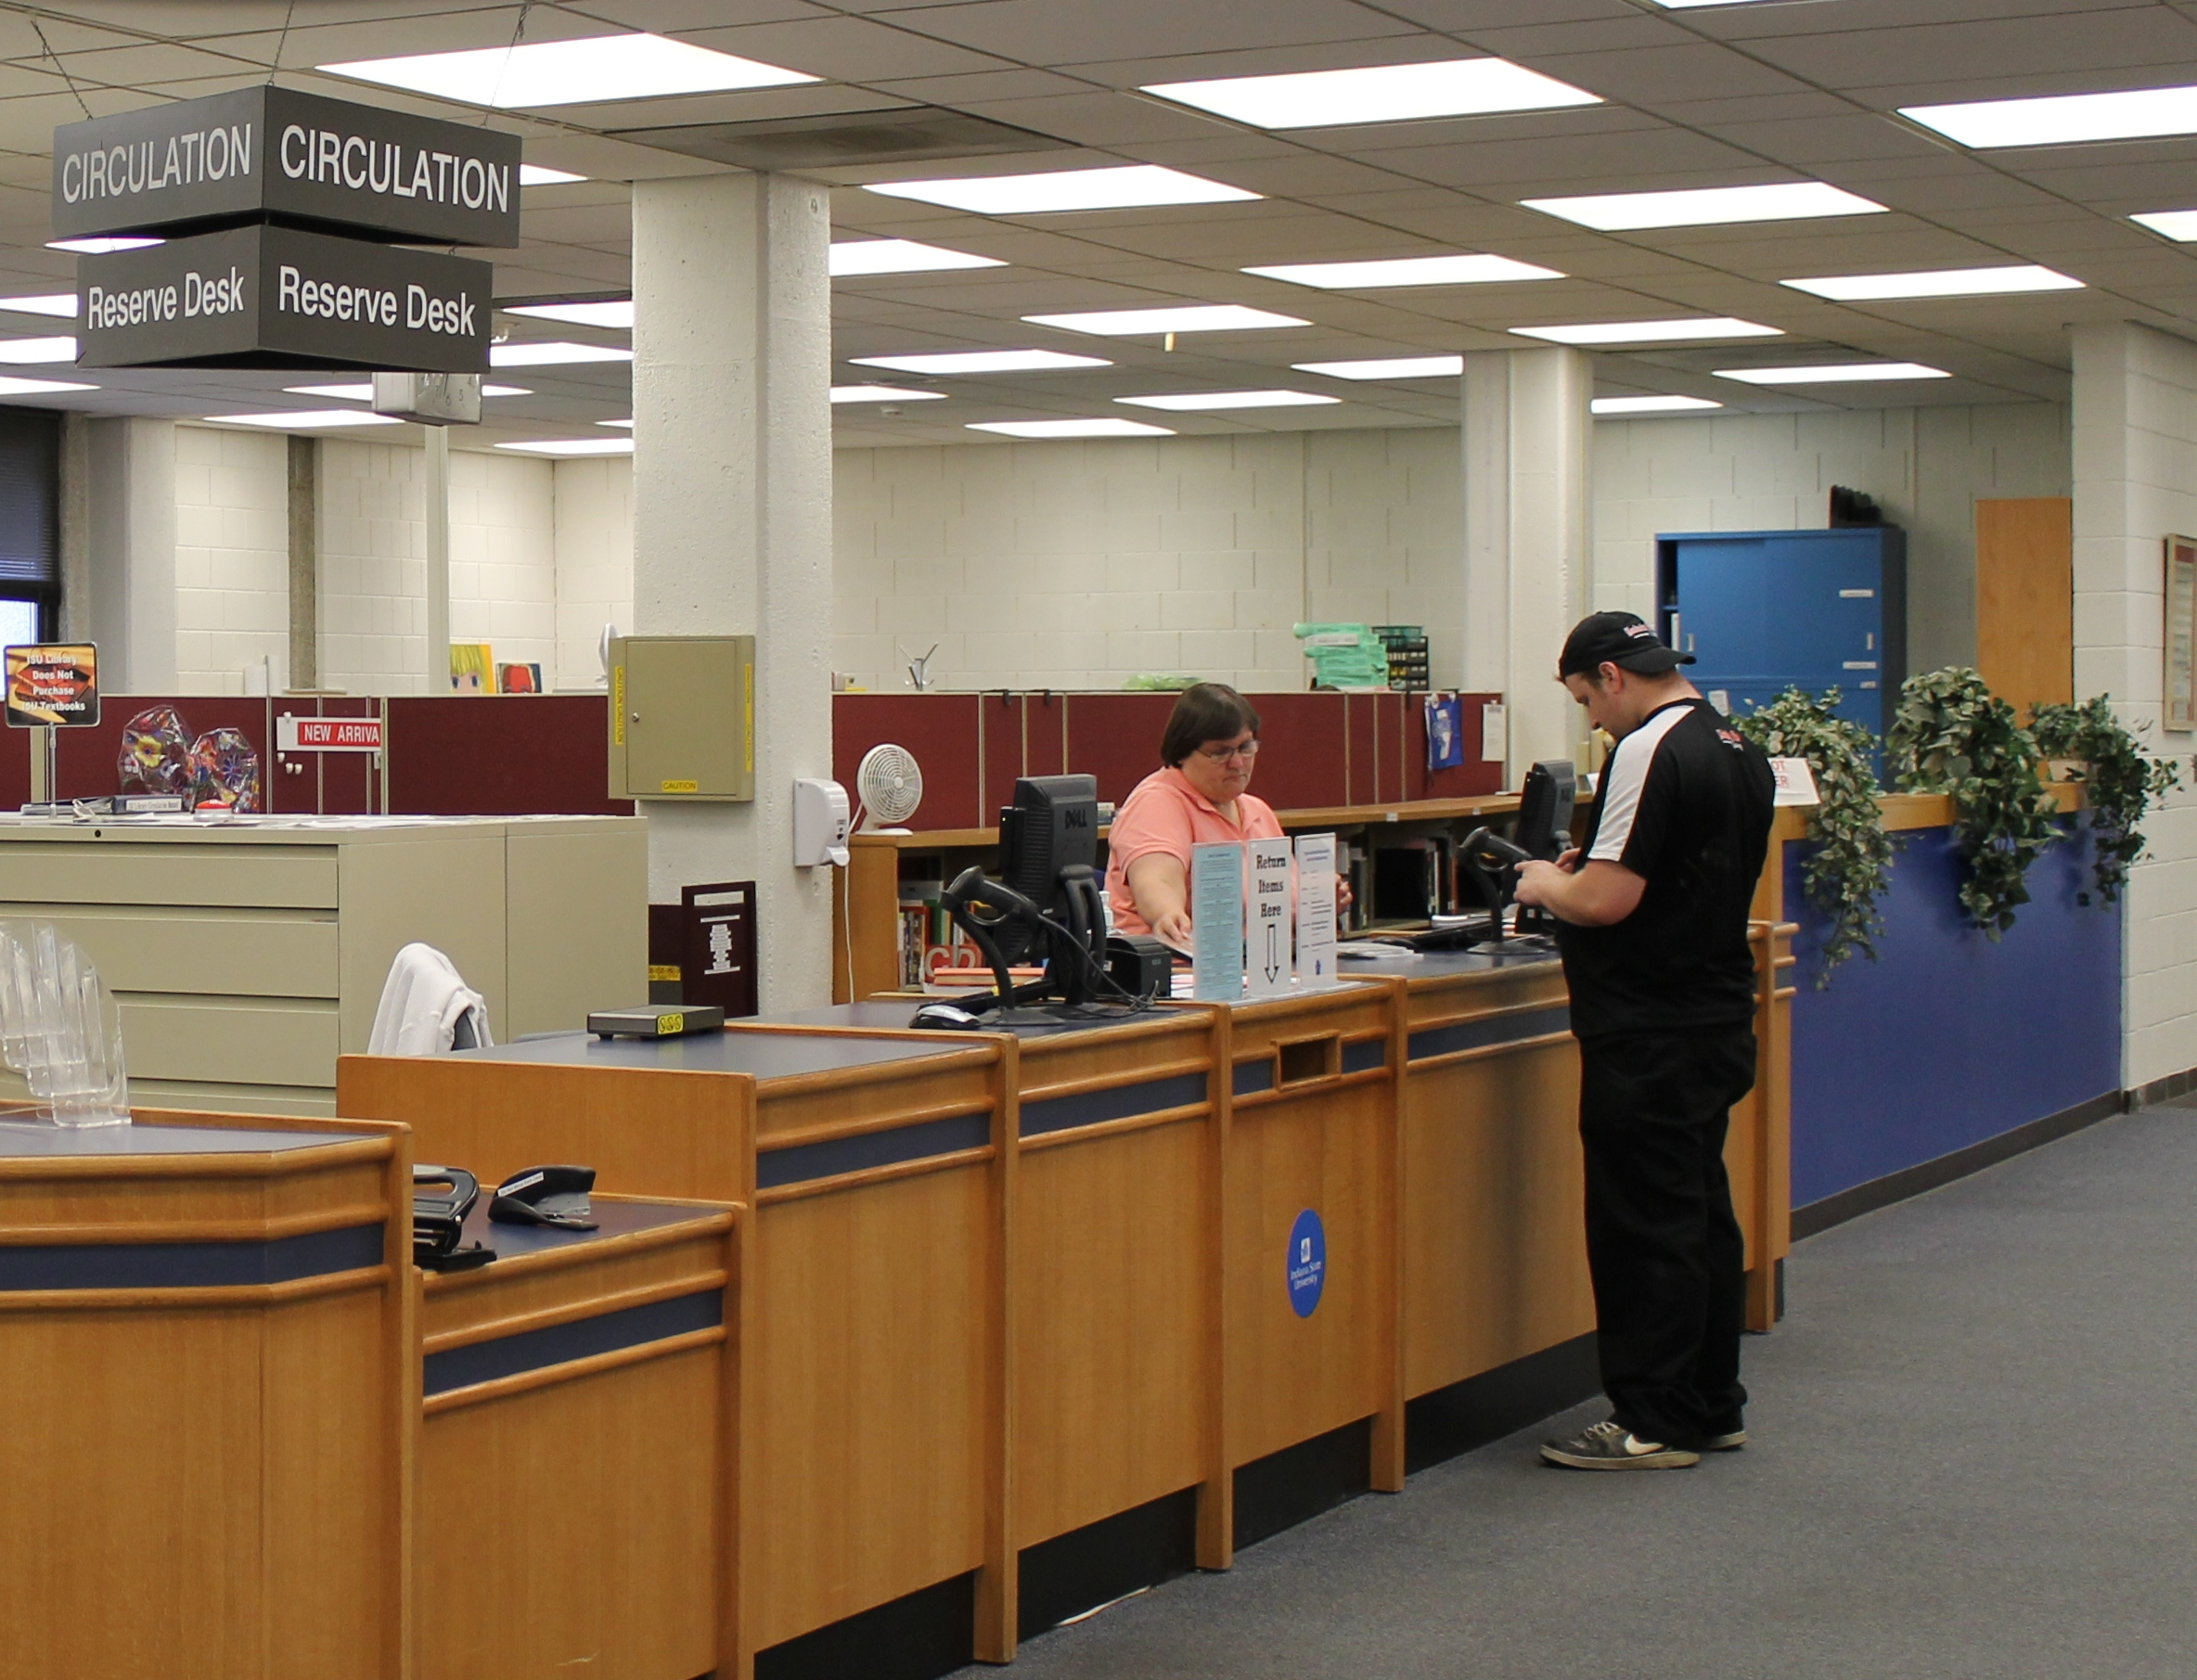 Until mid-May, 2014: Circulation Desk with Blue Wall